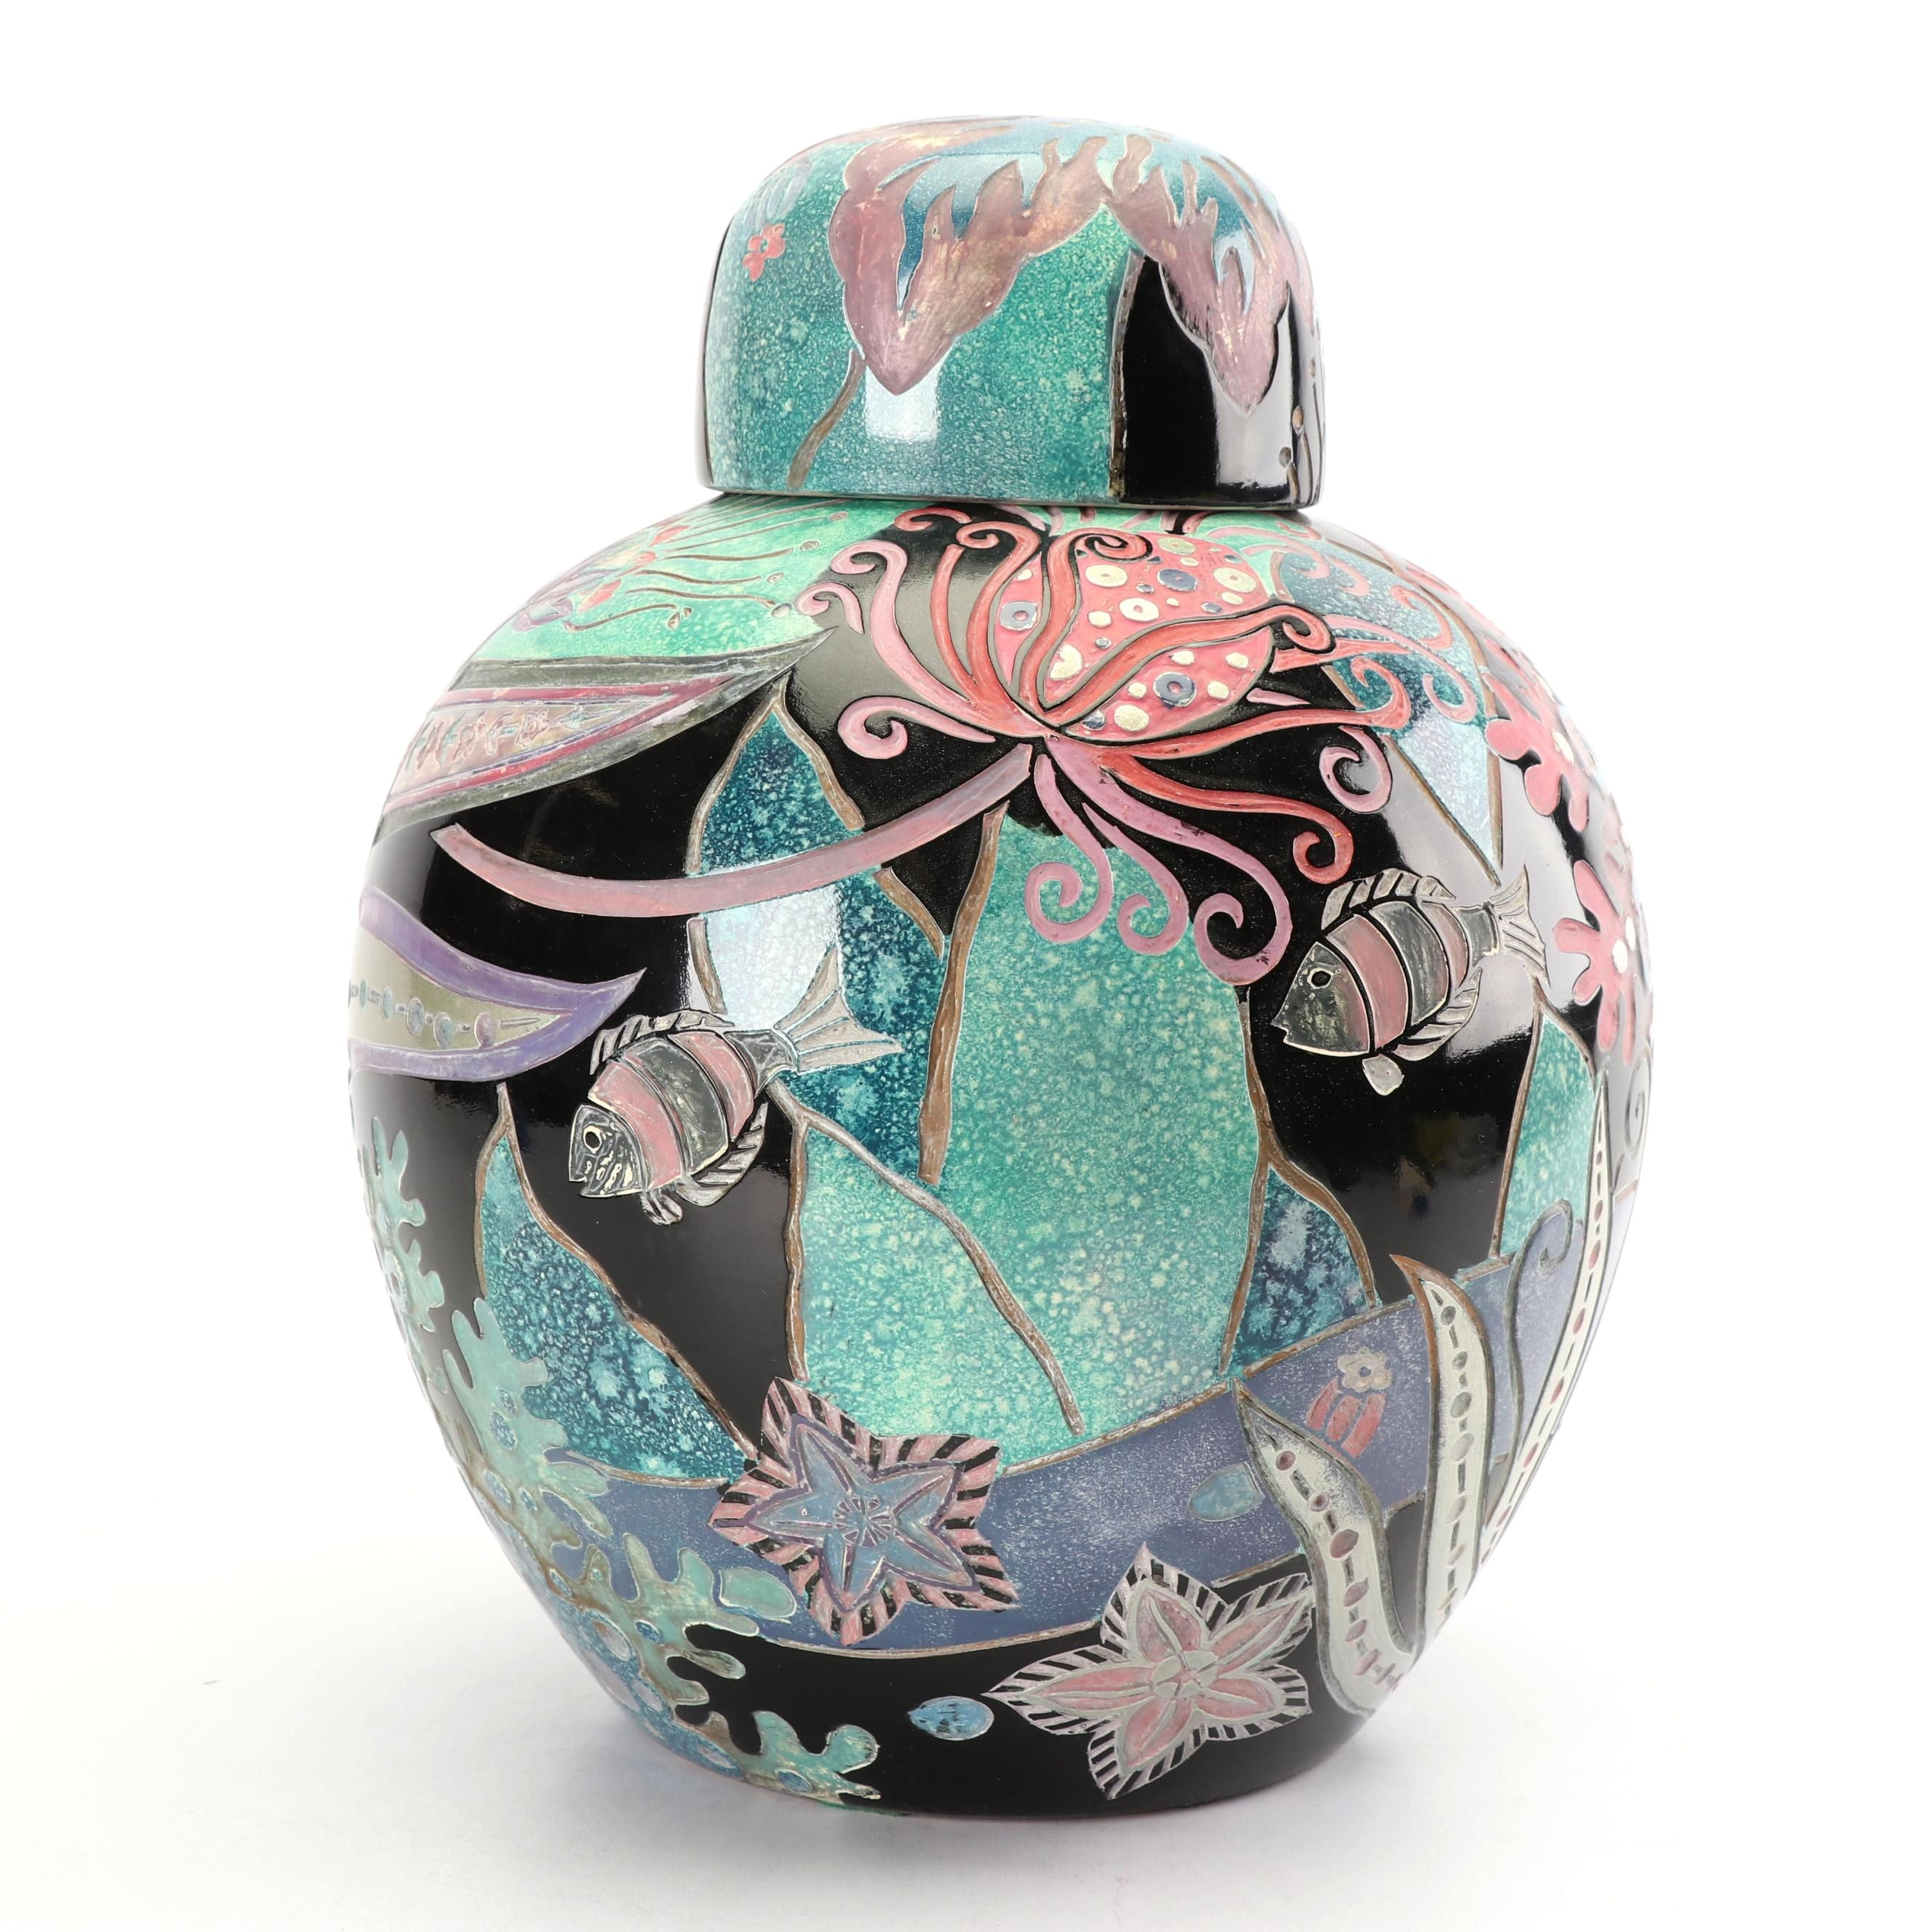 Chinese Hand-Painted Ocean Themed Porcelain Ginger Jar